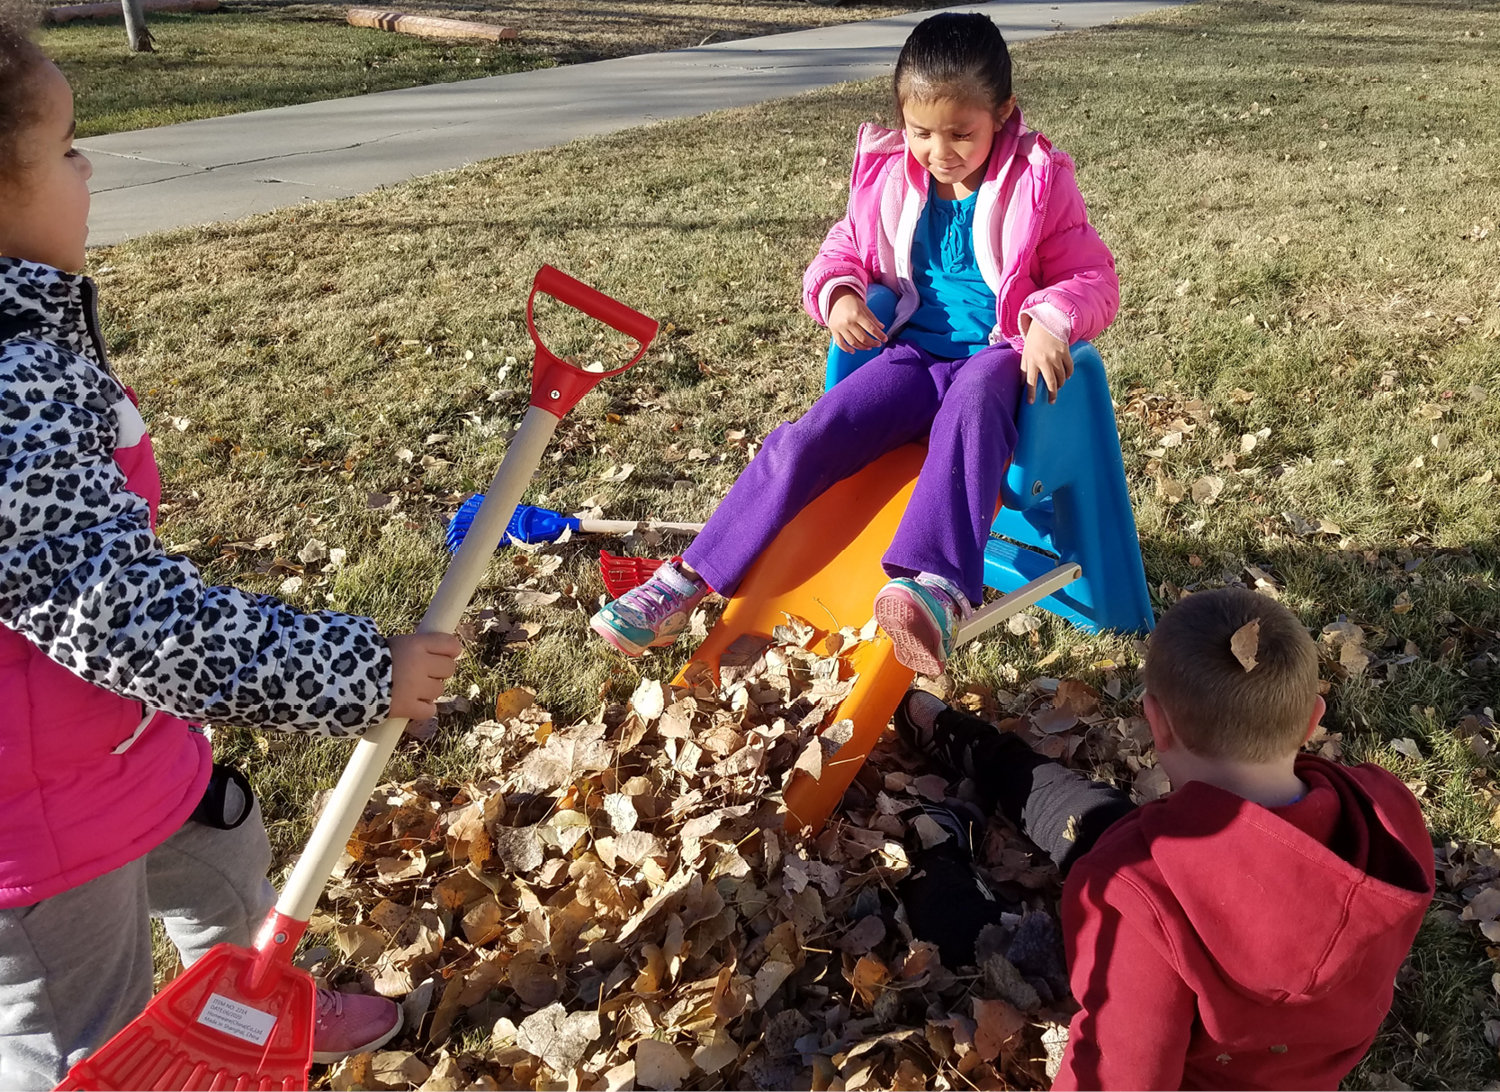 Elienai Hernandez, Sarai Hernandez and Nathan Wipf play in the leaves during a beautiful December day.